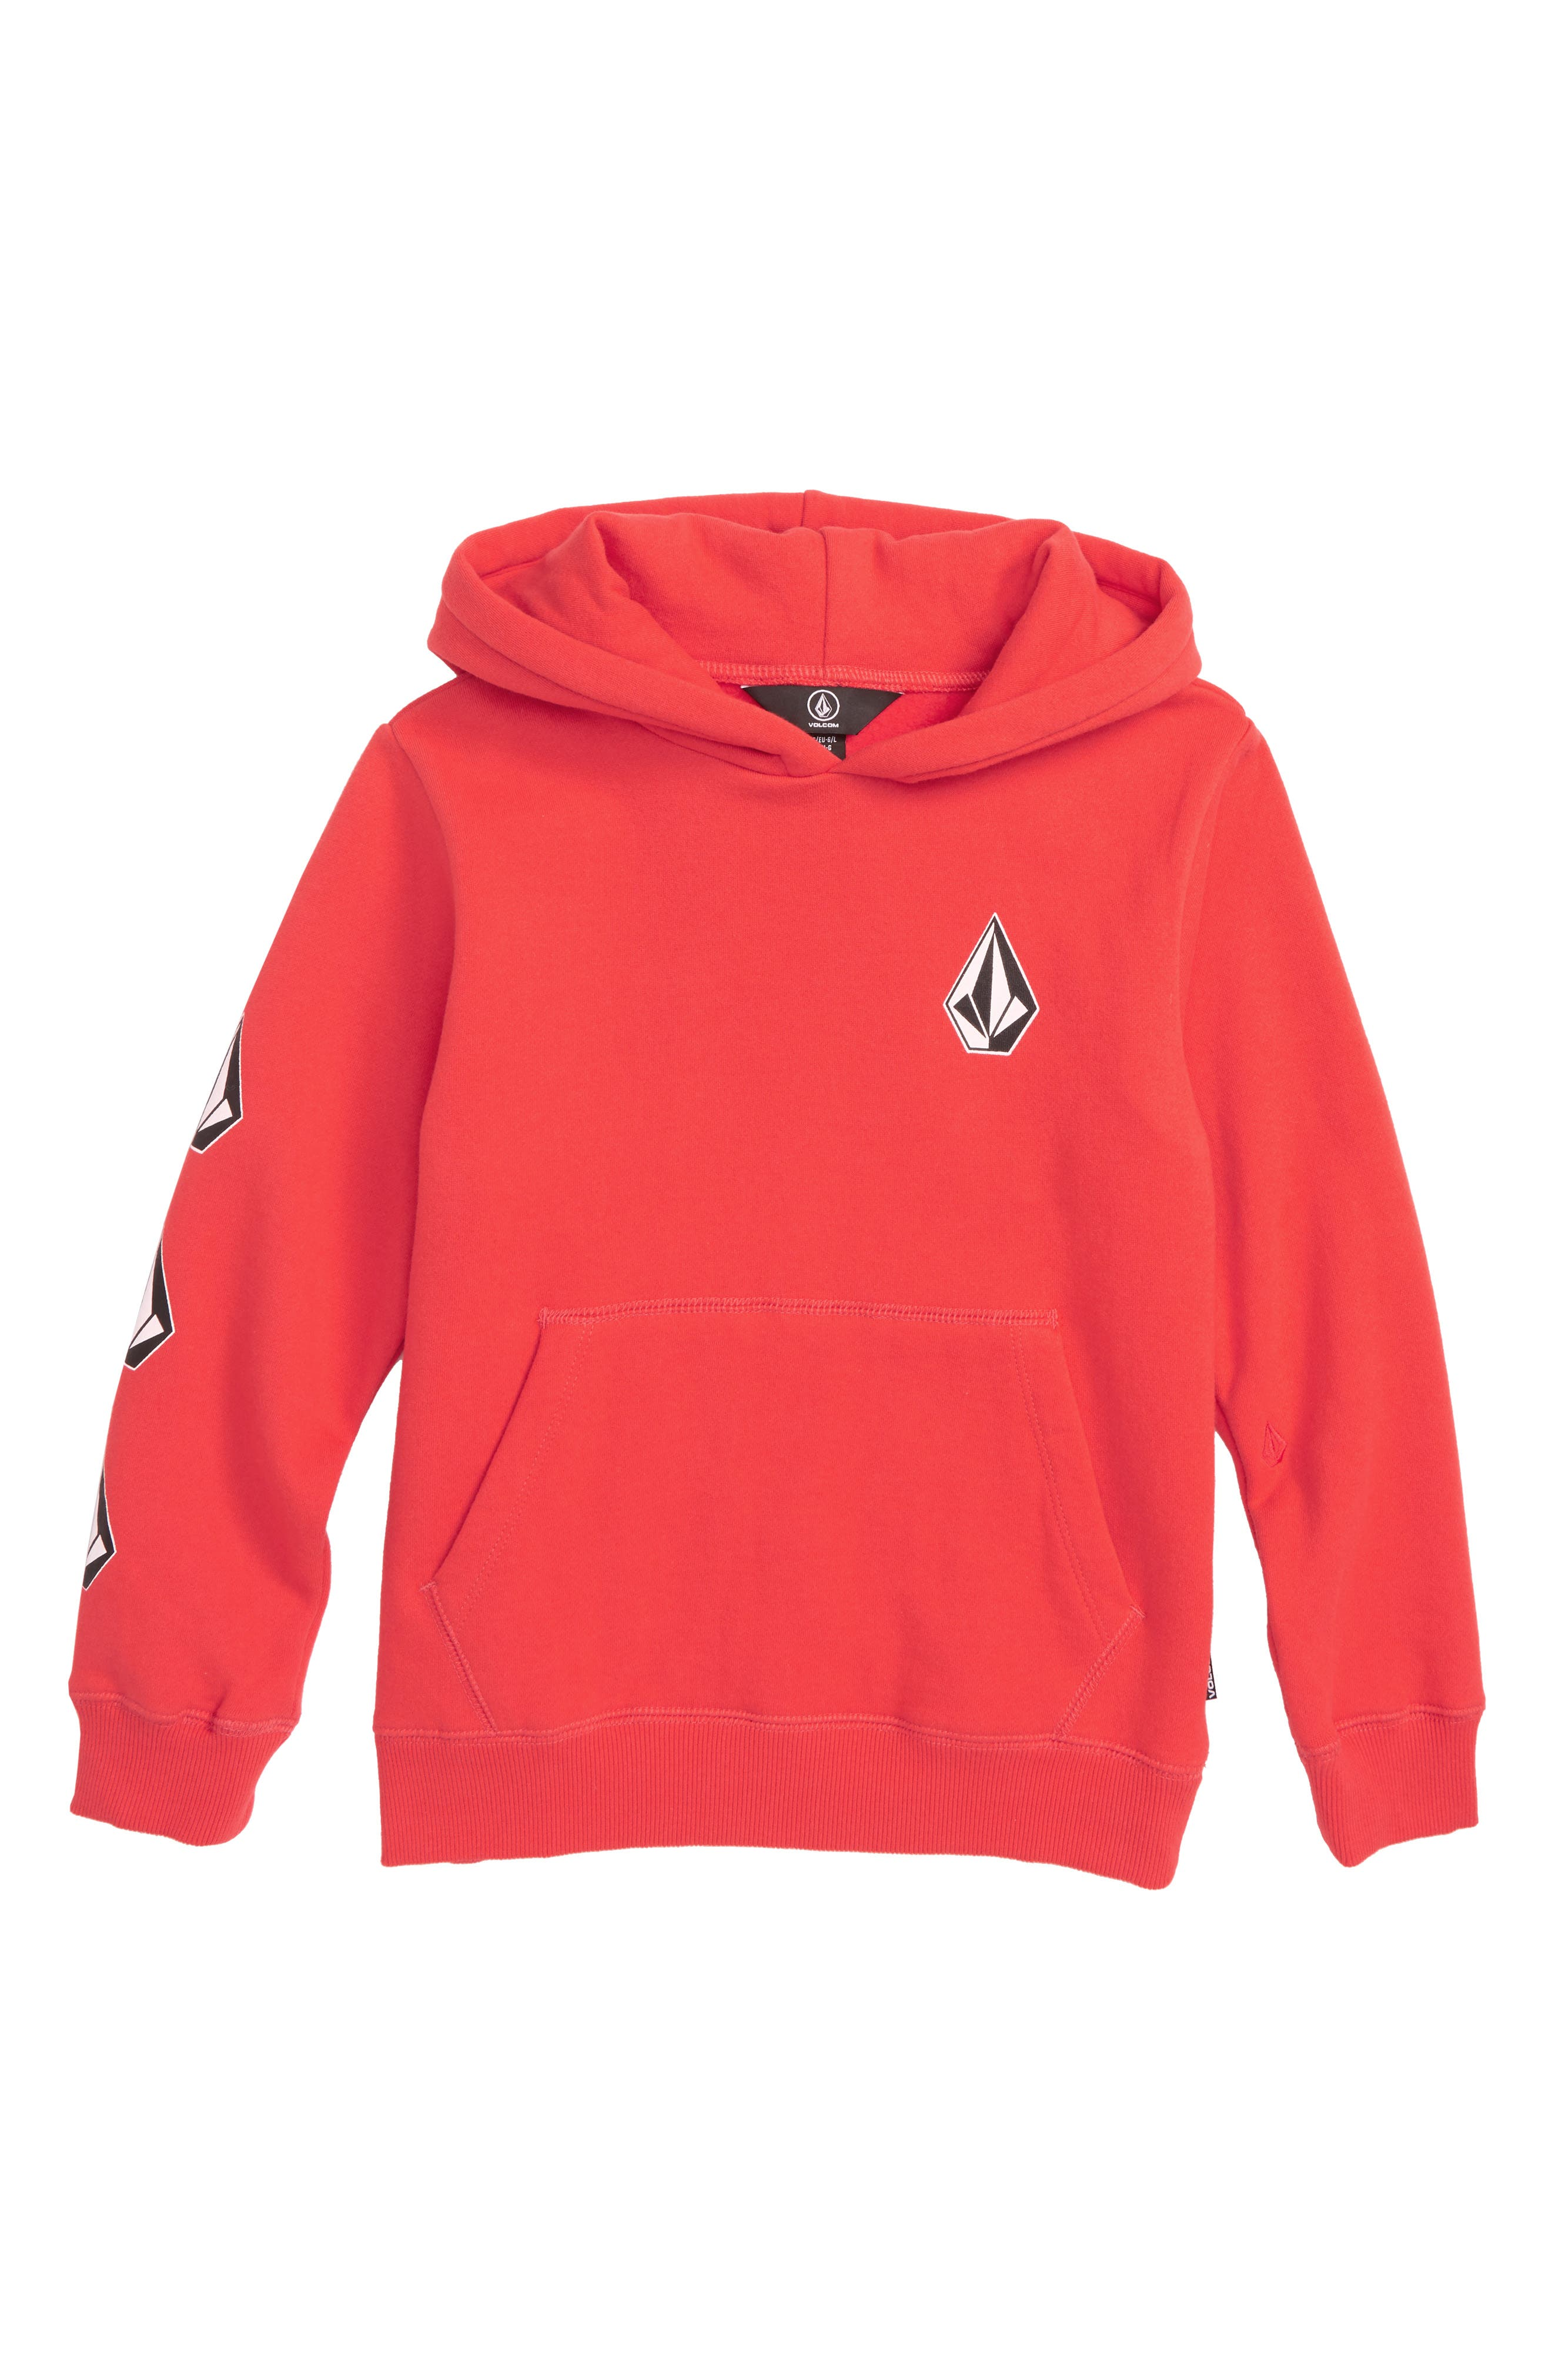 Deadly Stones Hoodie,                             Main thumbnail 1, color,                             621